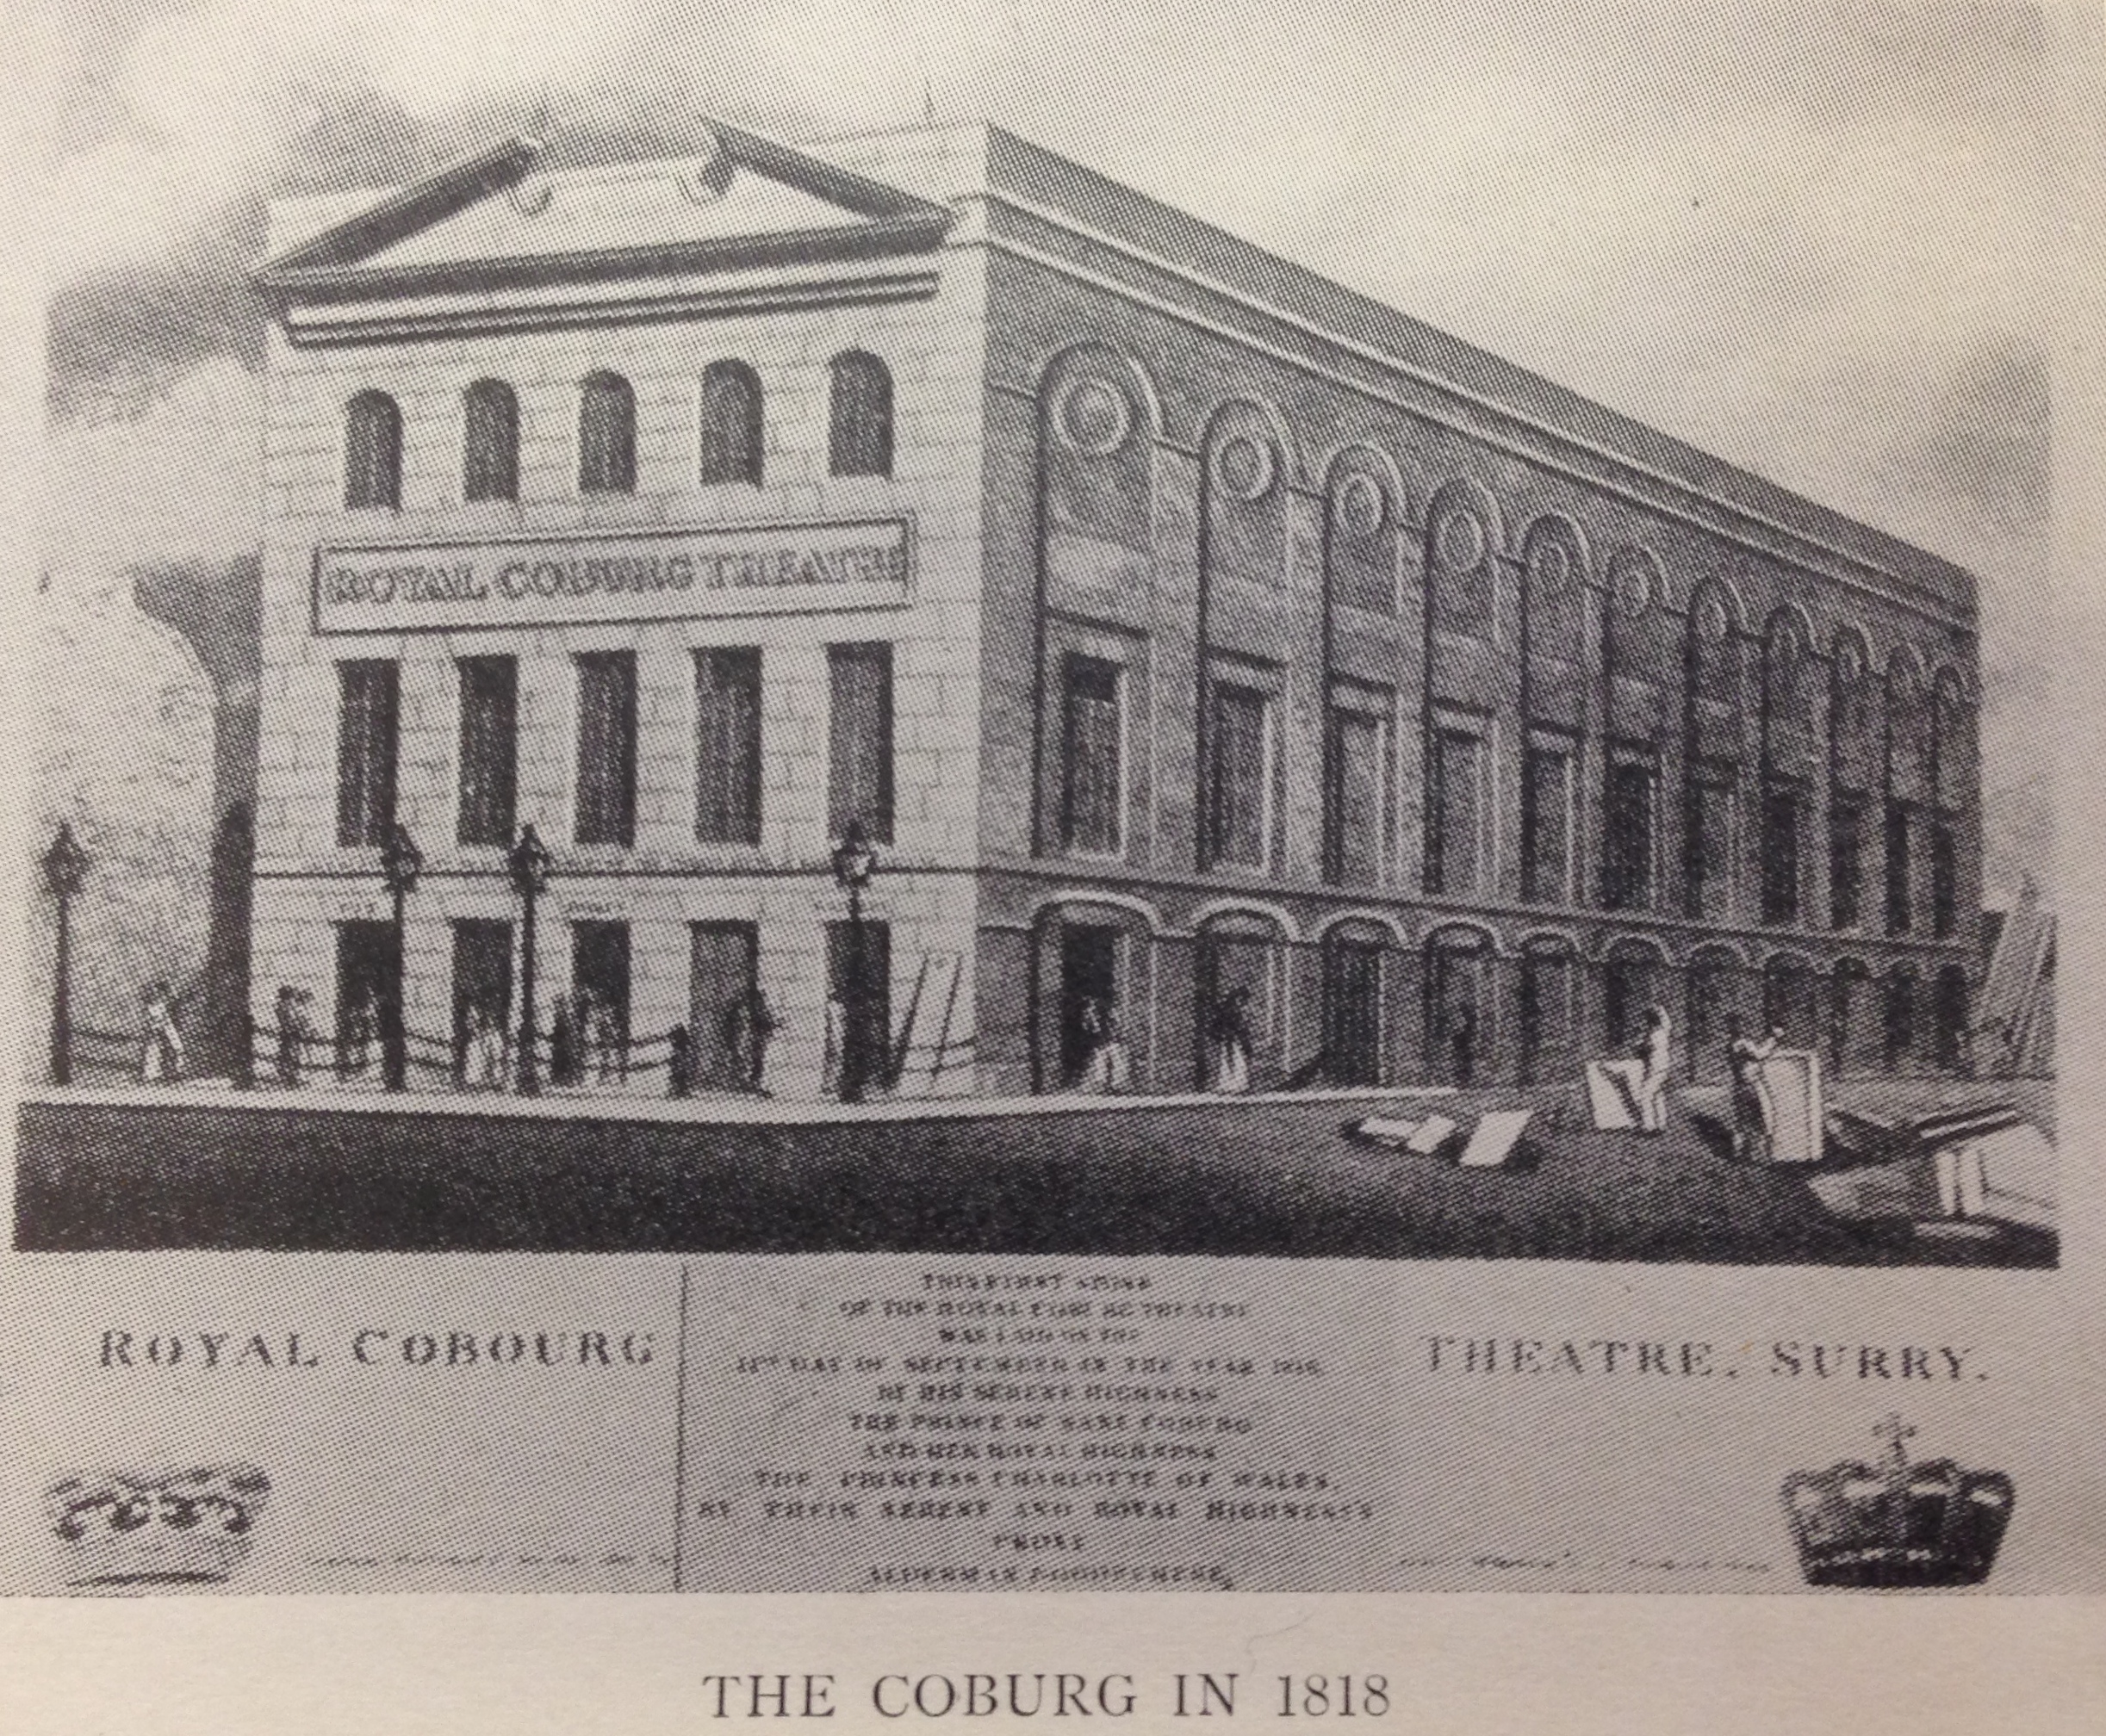 <b>Exterior of Royal Coburg</b>     	</br>Exterior of the Royal Coburg Theatre (also known as the Old Vic), London, 1818.</br><br/><b>Source: </b><i>Used with permission from the University of Bristol Theatre Collection.</i>